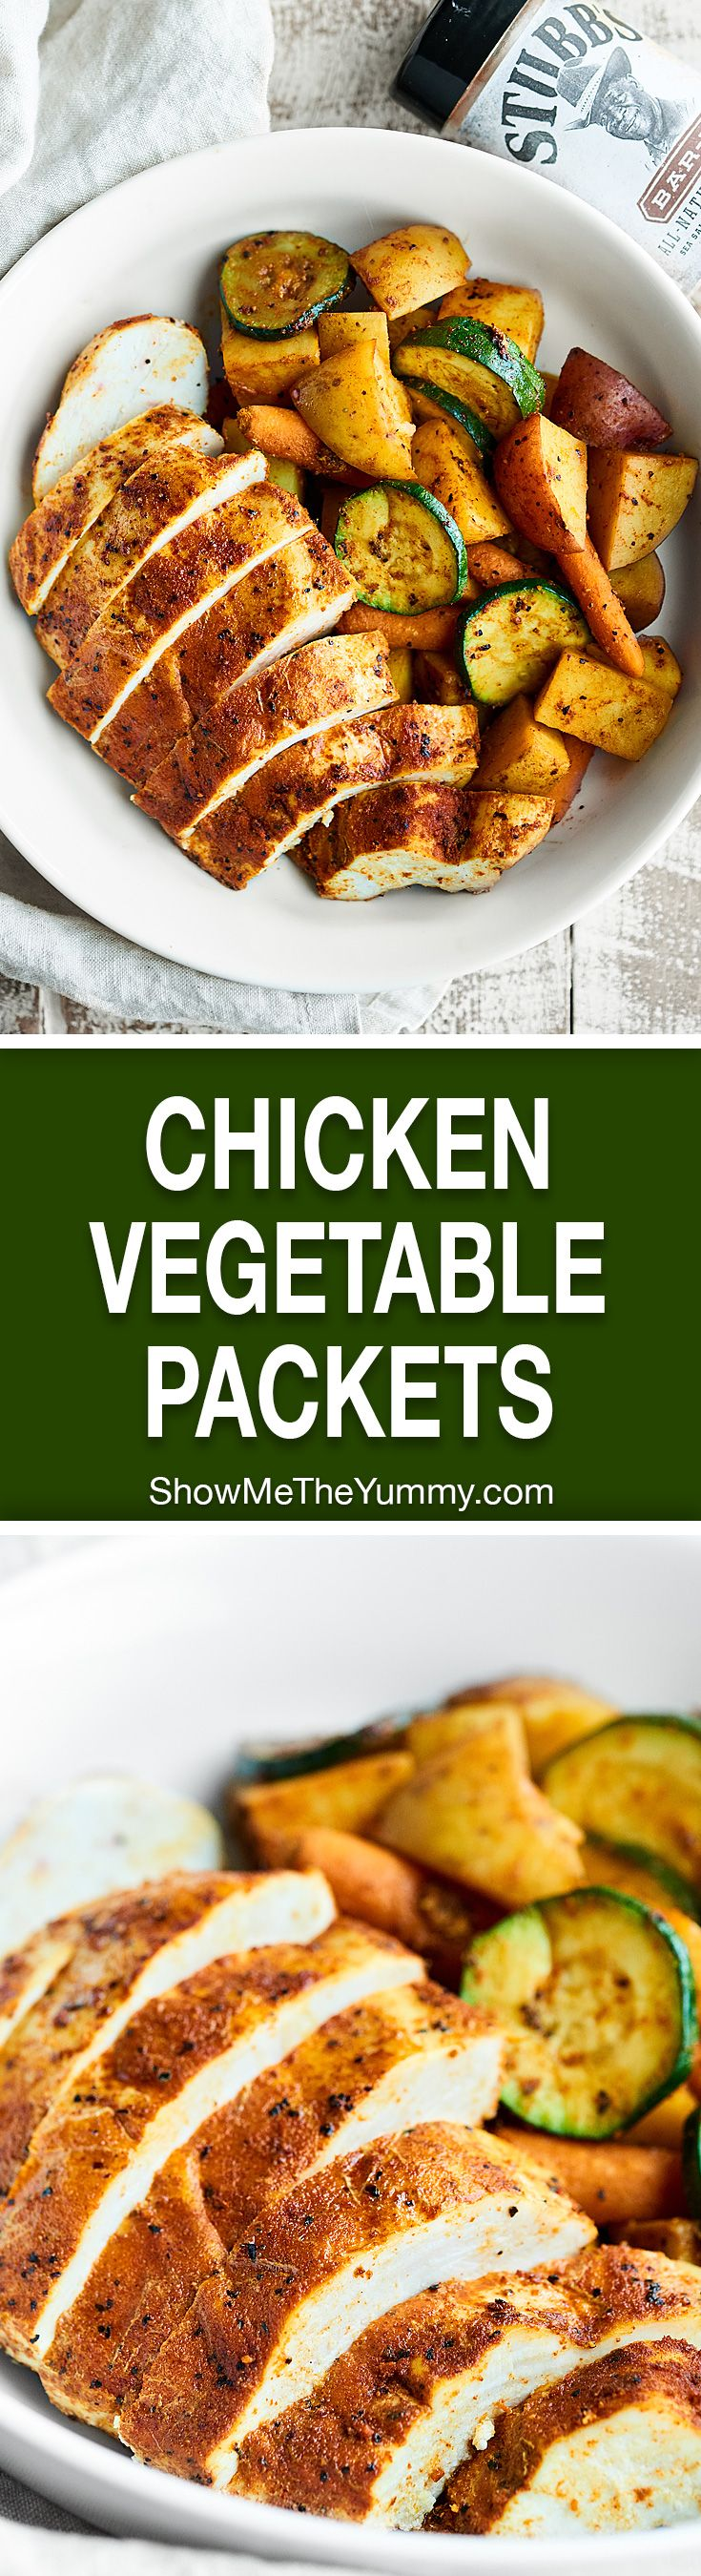 1000 images about show me the yummy on the blog on for Chicken and vegetables in foil packets recipe